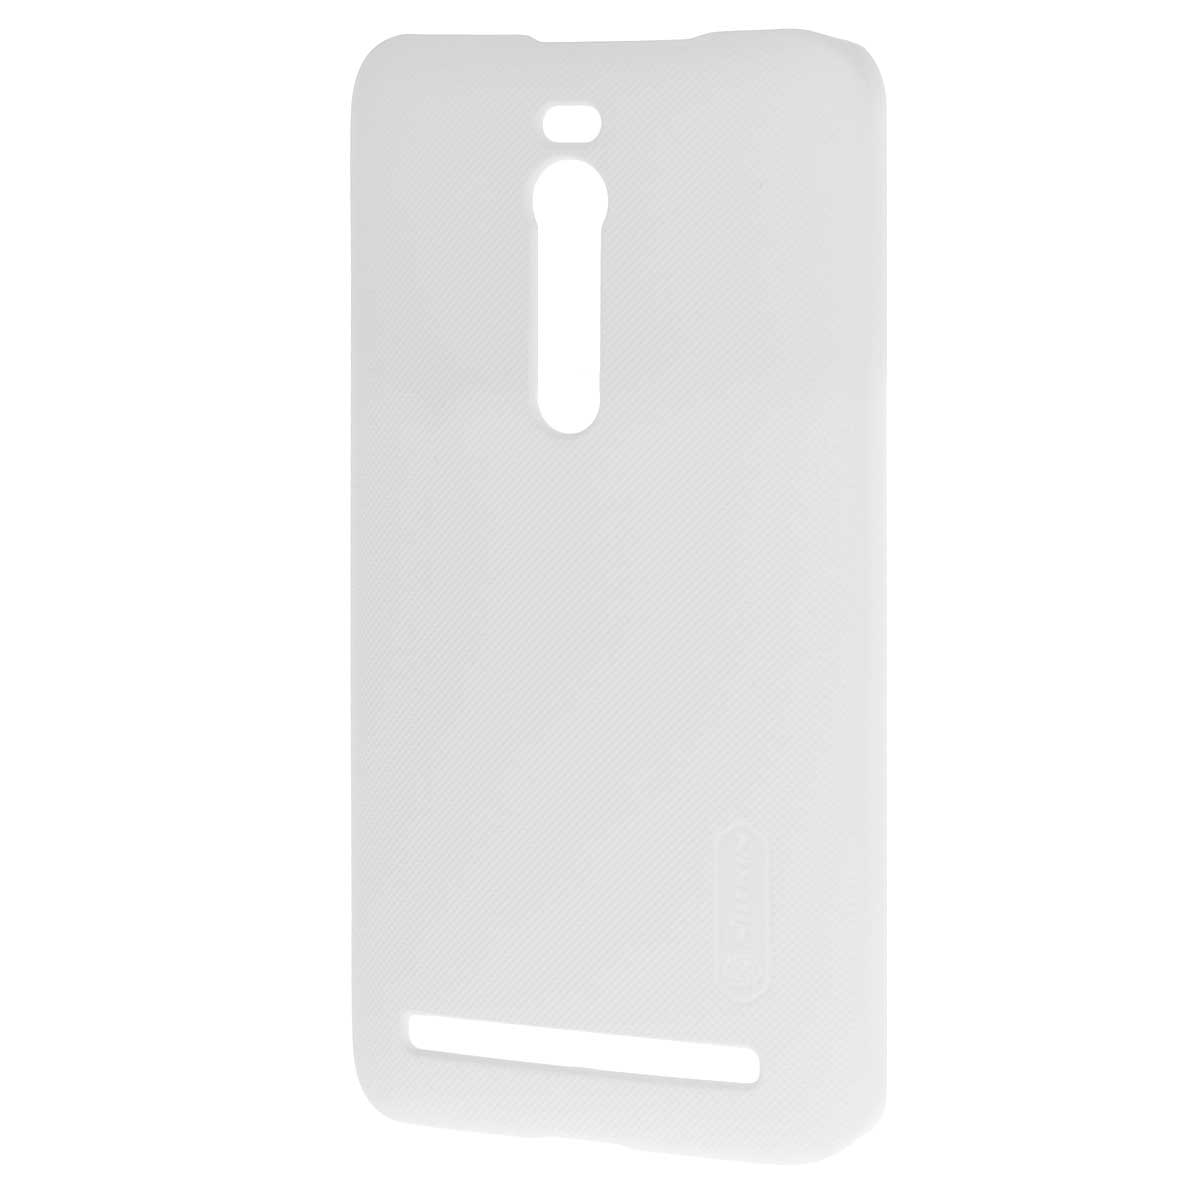 Nillkin Super Frosted Shield чехол для Asus ZenFone 2 (ZE551ML/ZE550ML), White чехол для смартфона htc desire 700 7088 nillkin super frosted shield черный